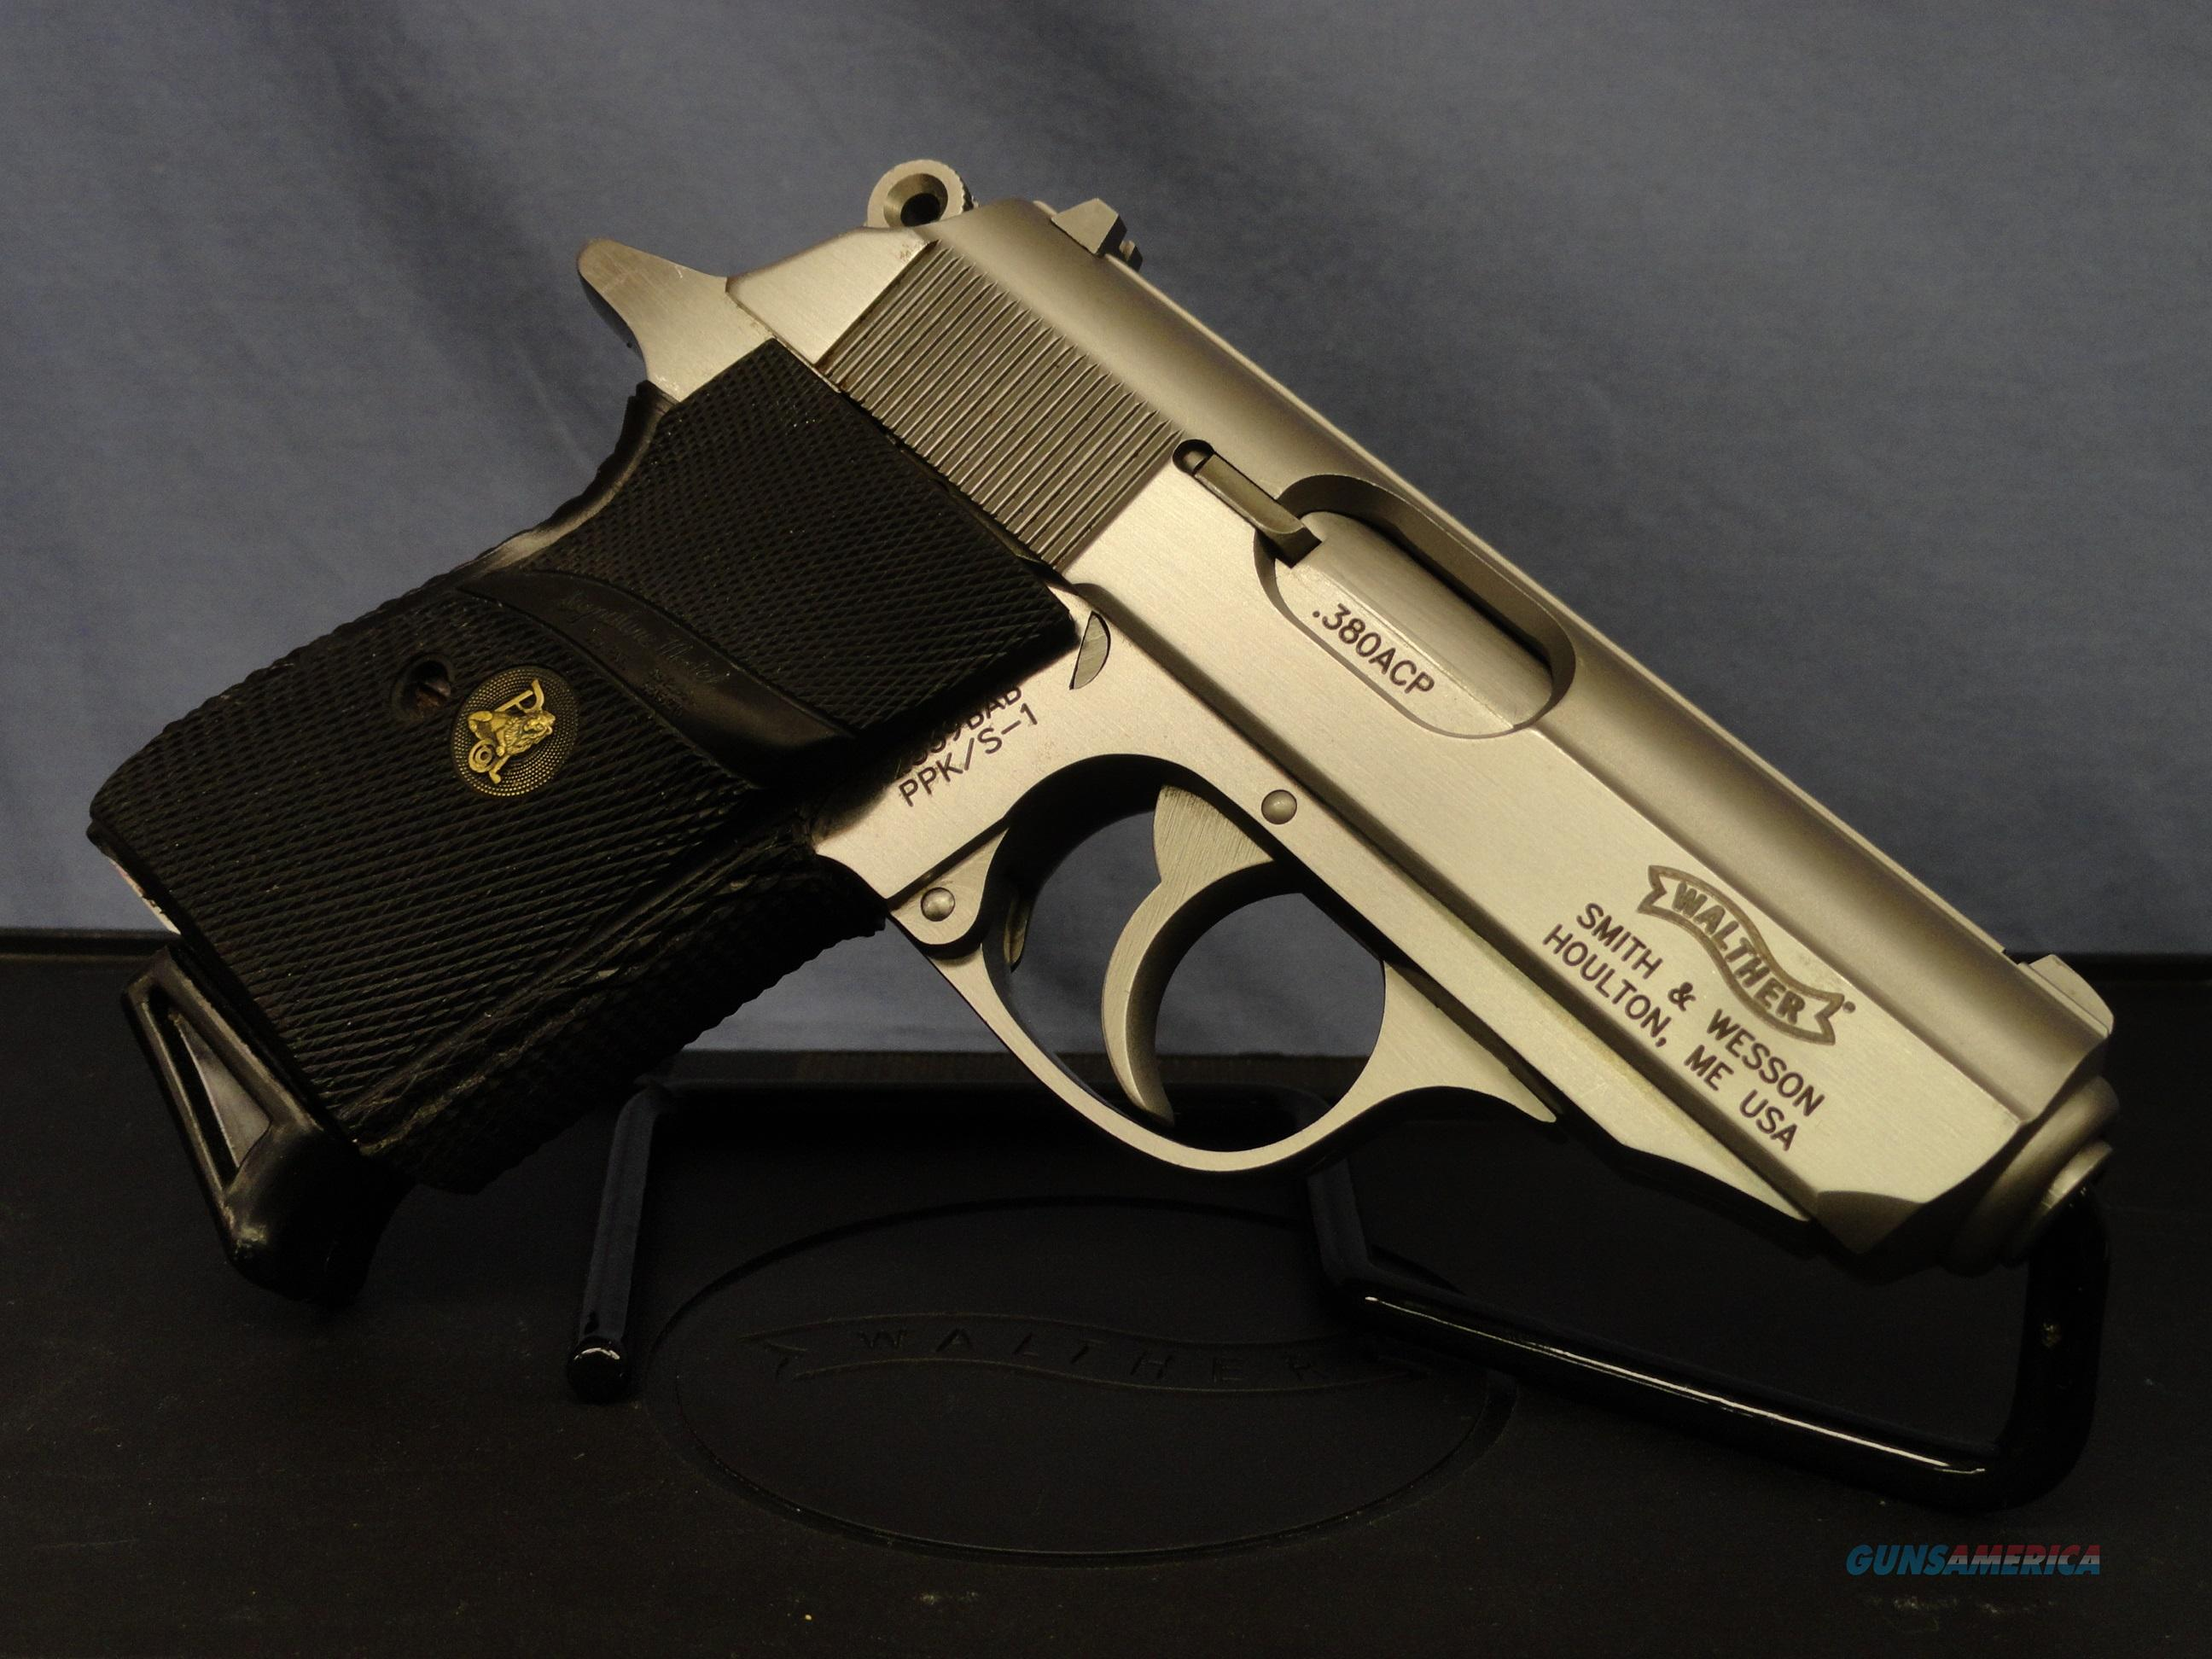 Walther PPK/S-1 .380 - Accessories included!   Guns > Pistols > Walther Pistols > Post WWII > PPK Series